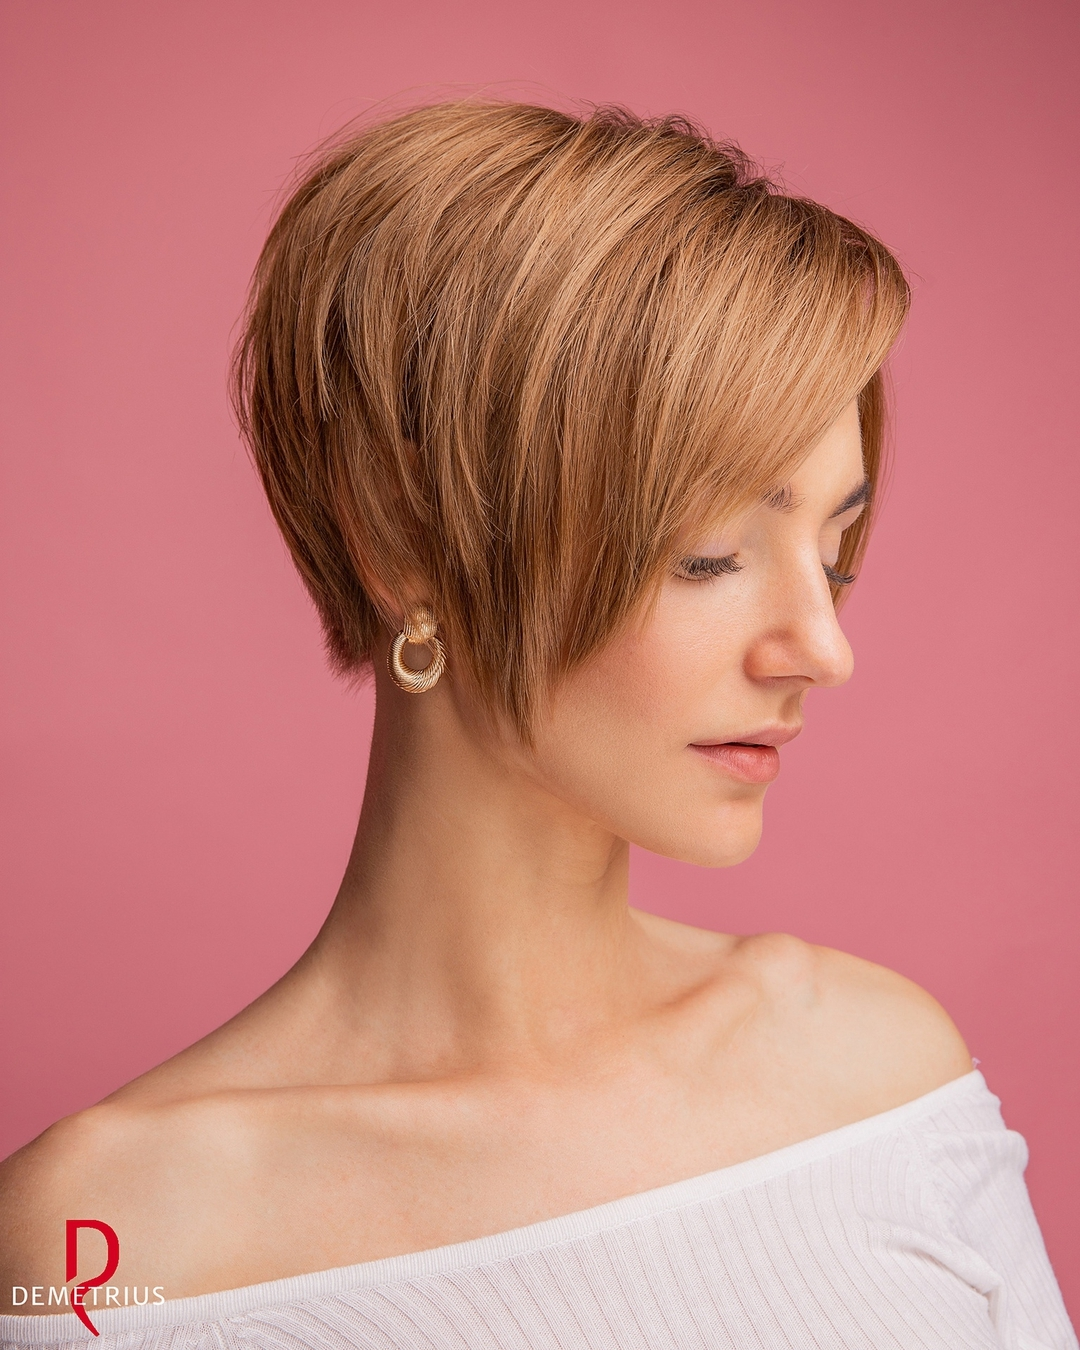 What is the best haircut for a long neck? - Hair Adviser